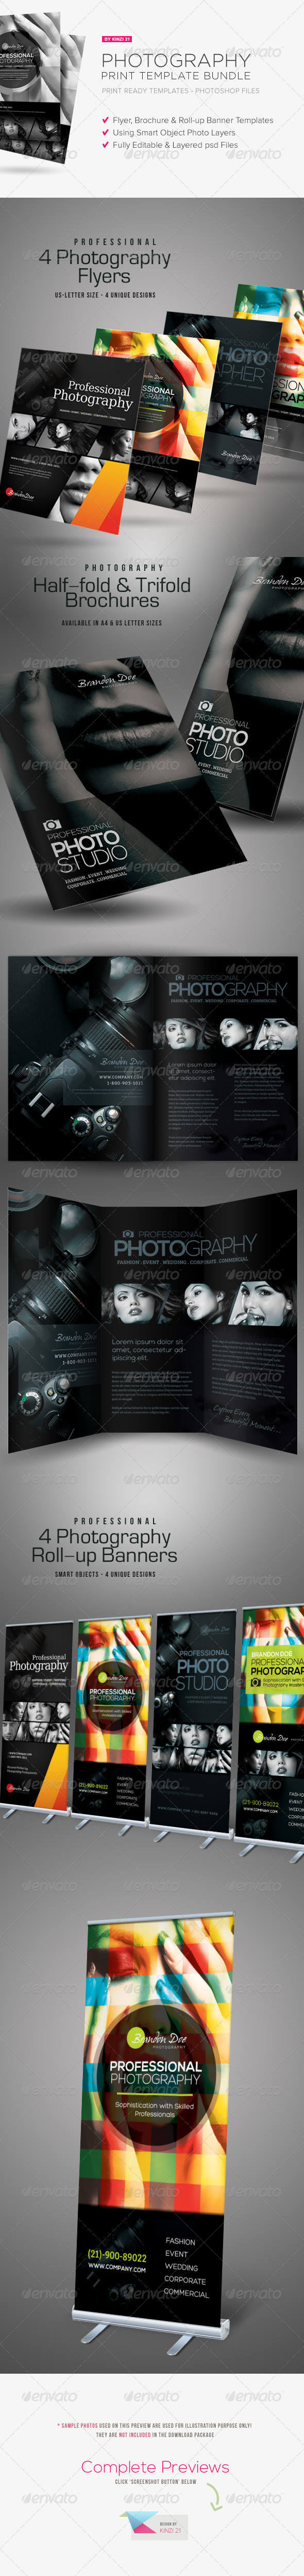 GraphicRiver Photography Print Template Bundle 6834502